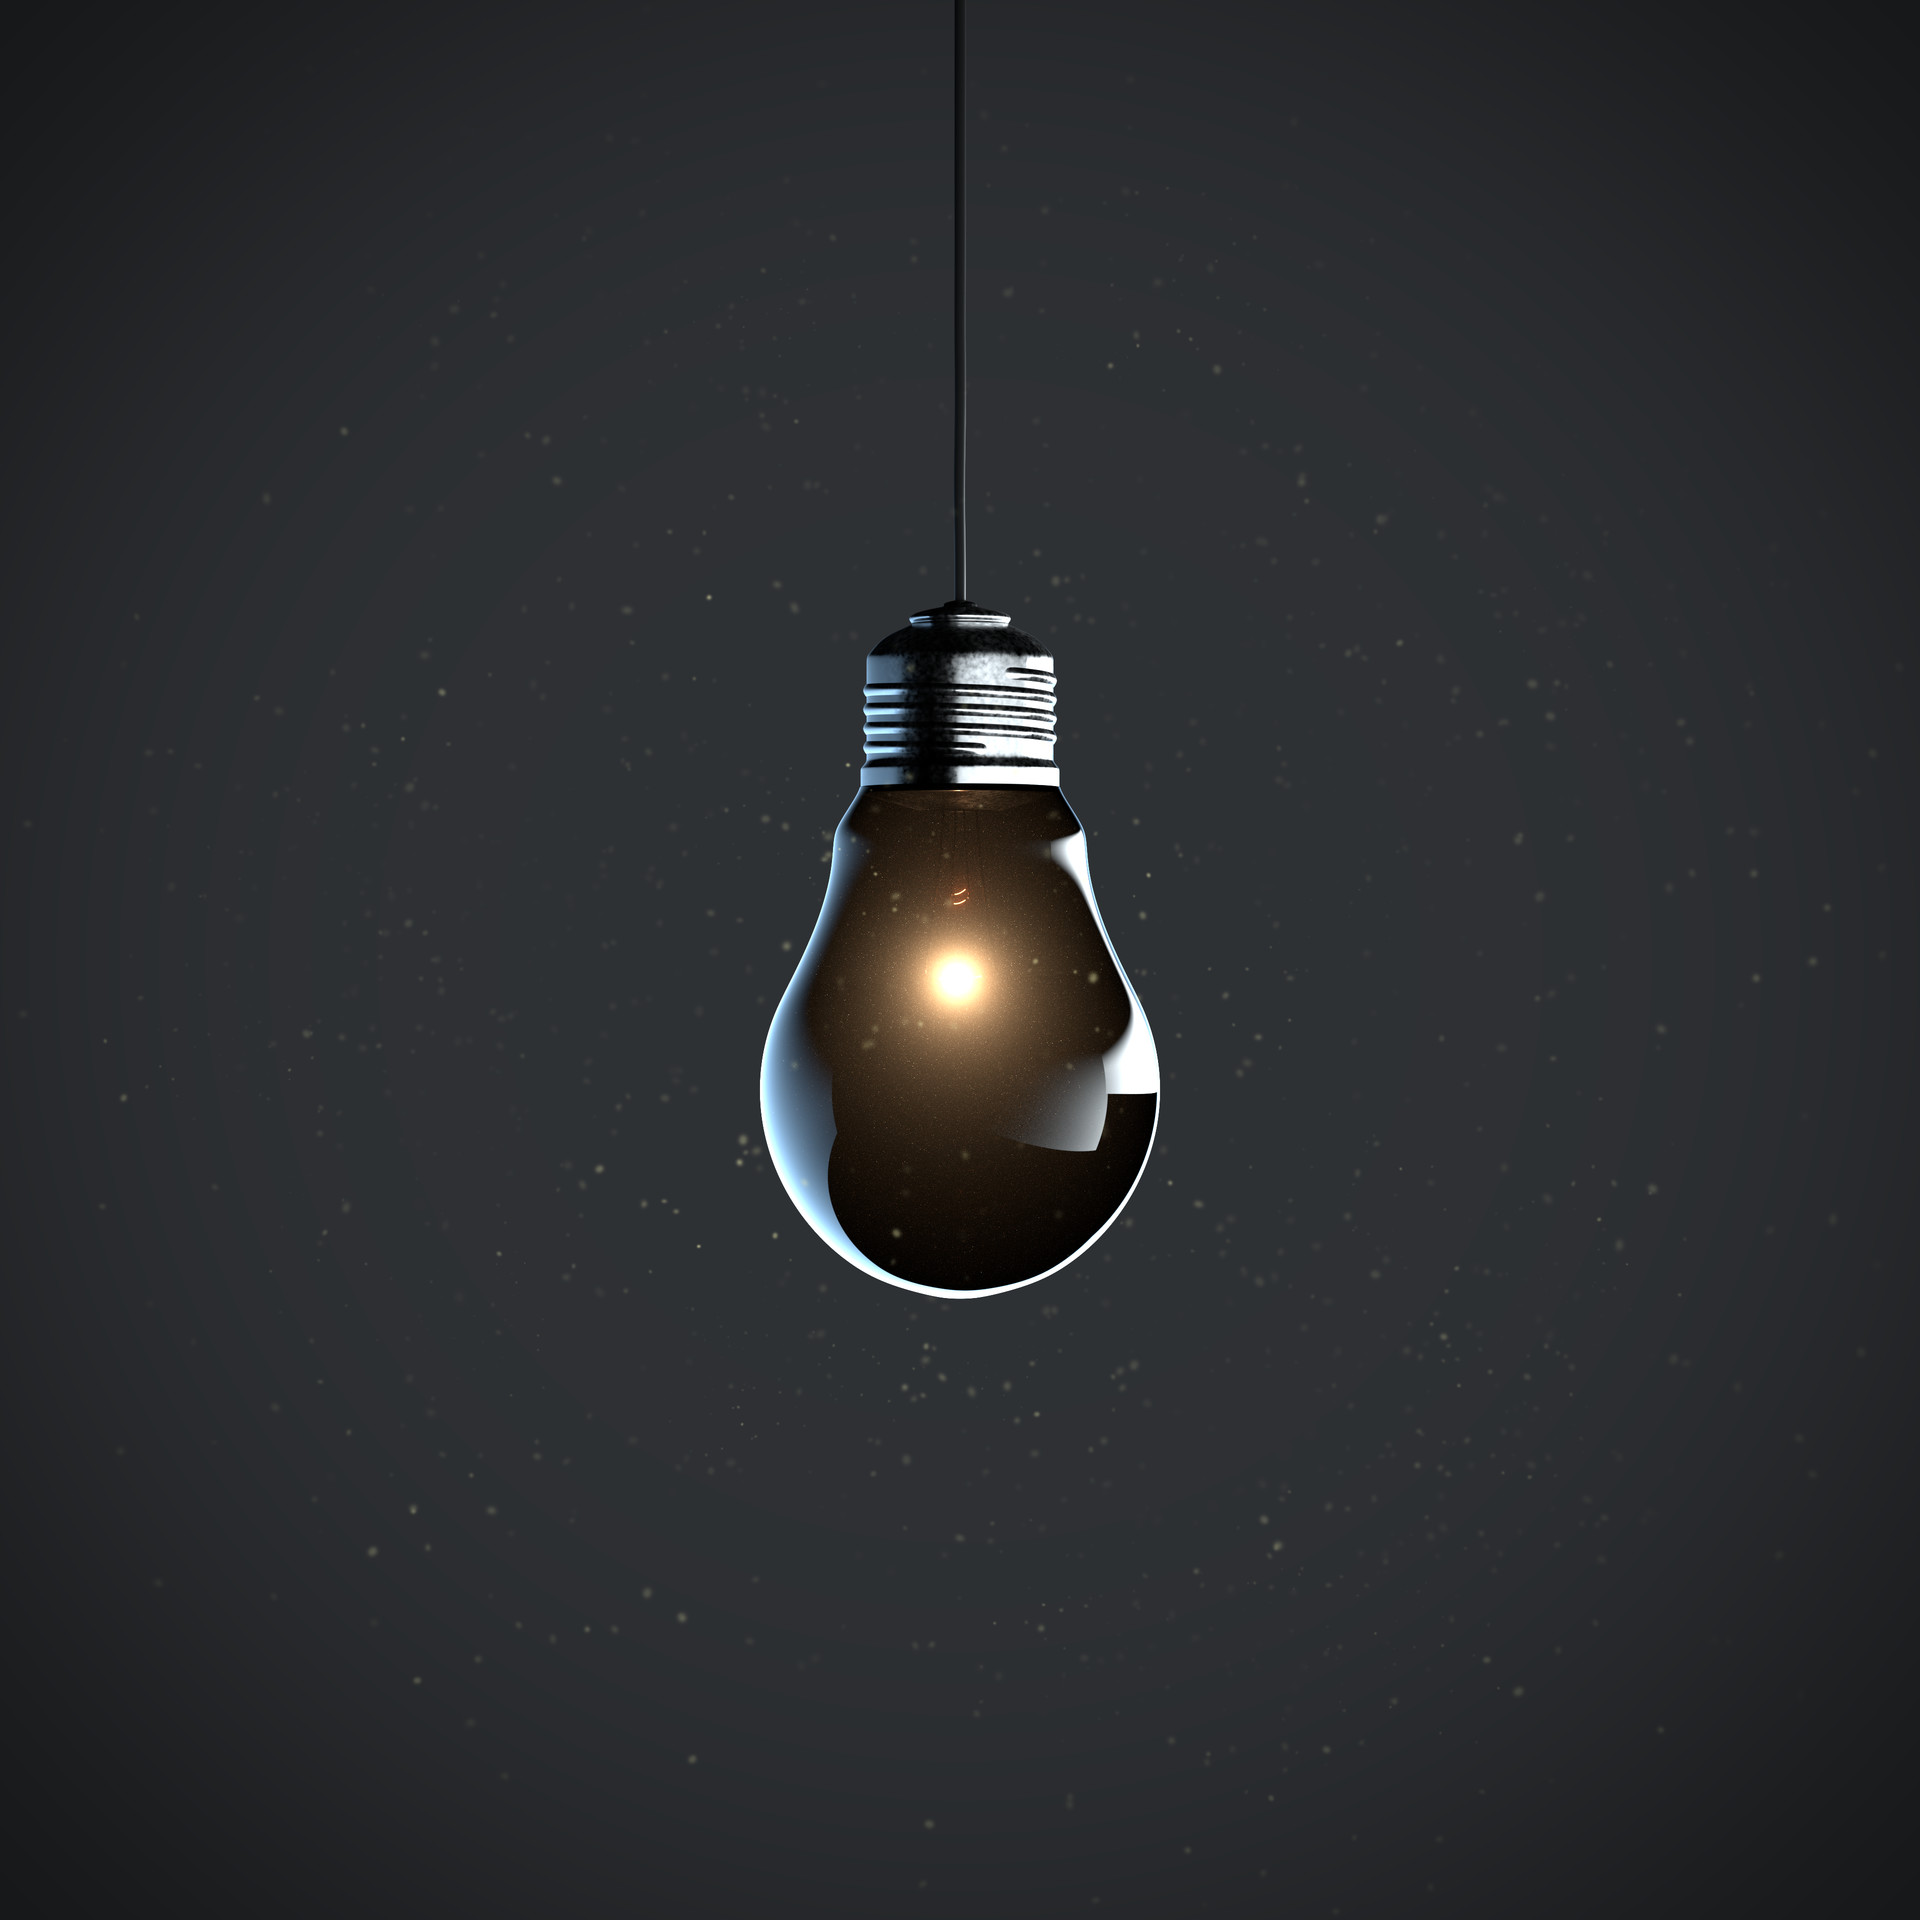 Chris ebbinger lightbulb 4k